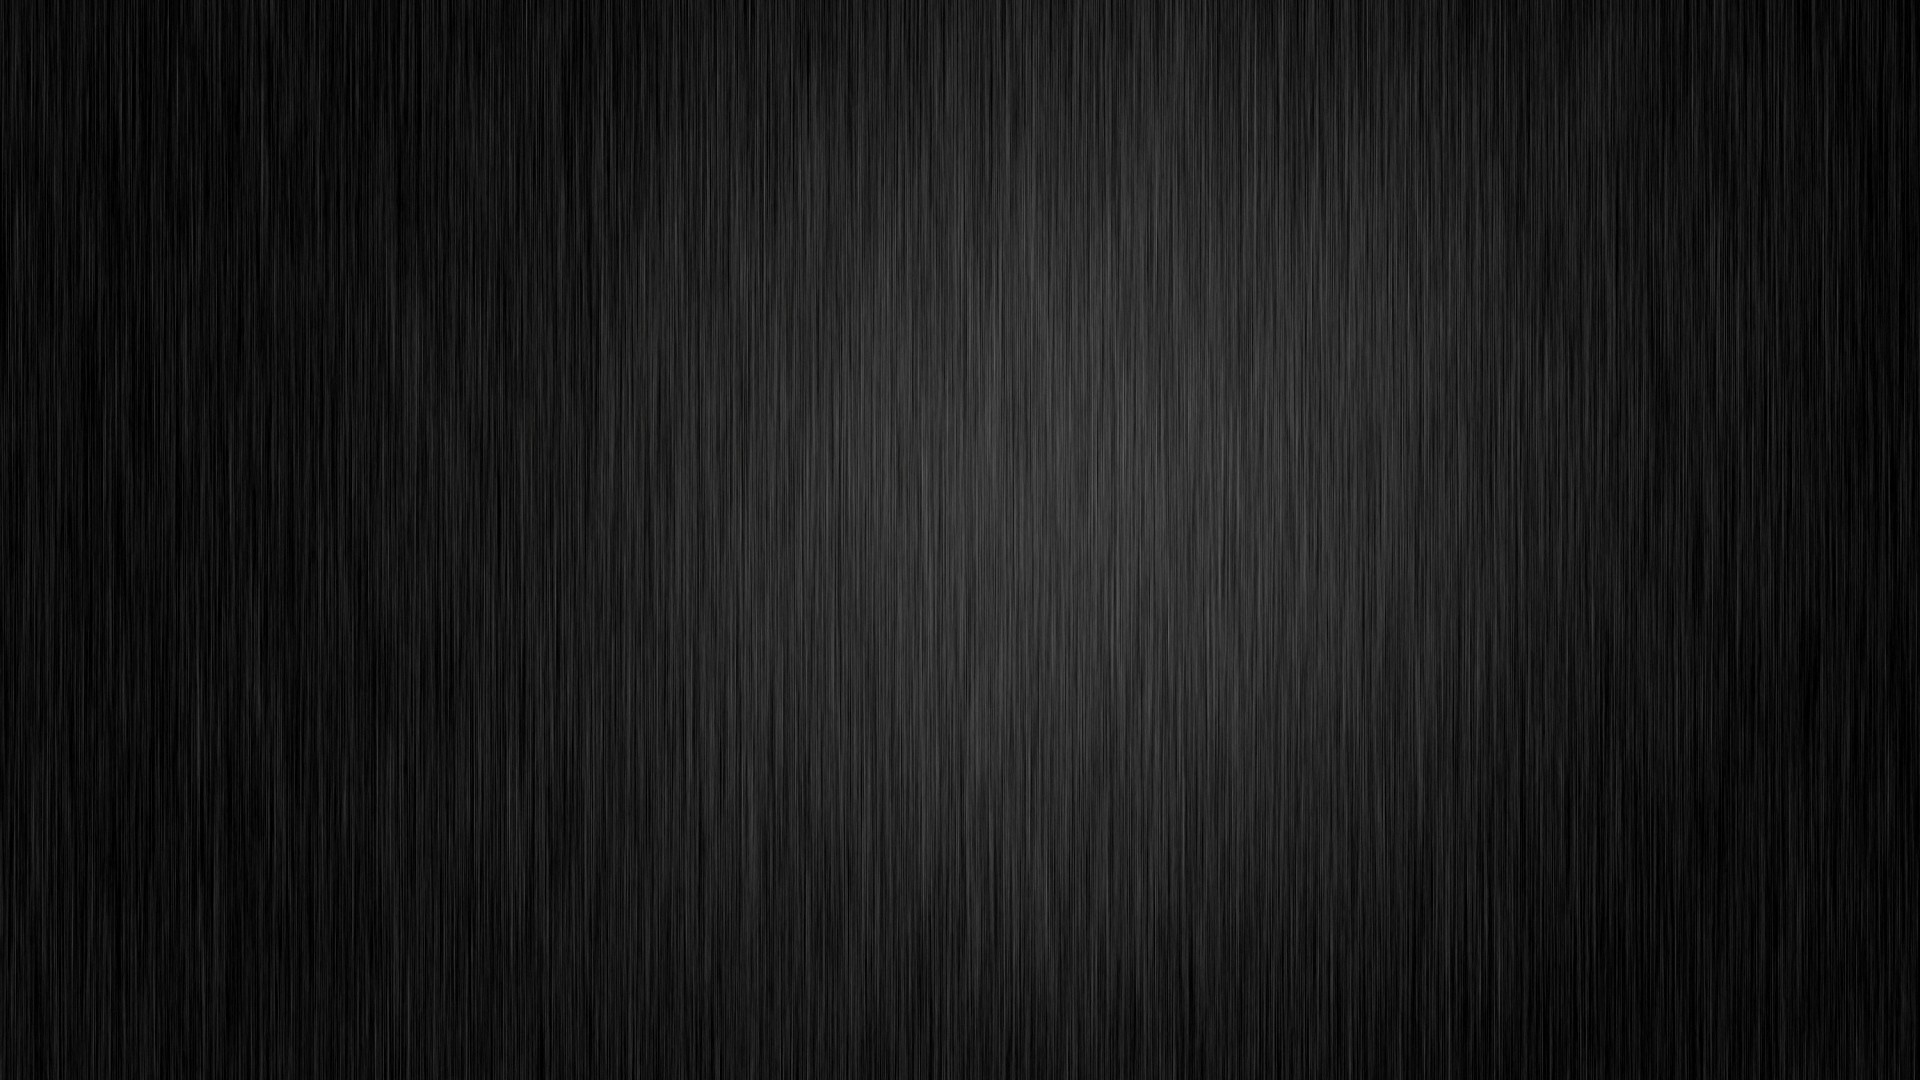 Wallpaper black, background, lines, scratches